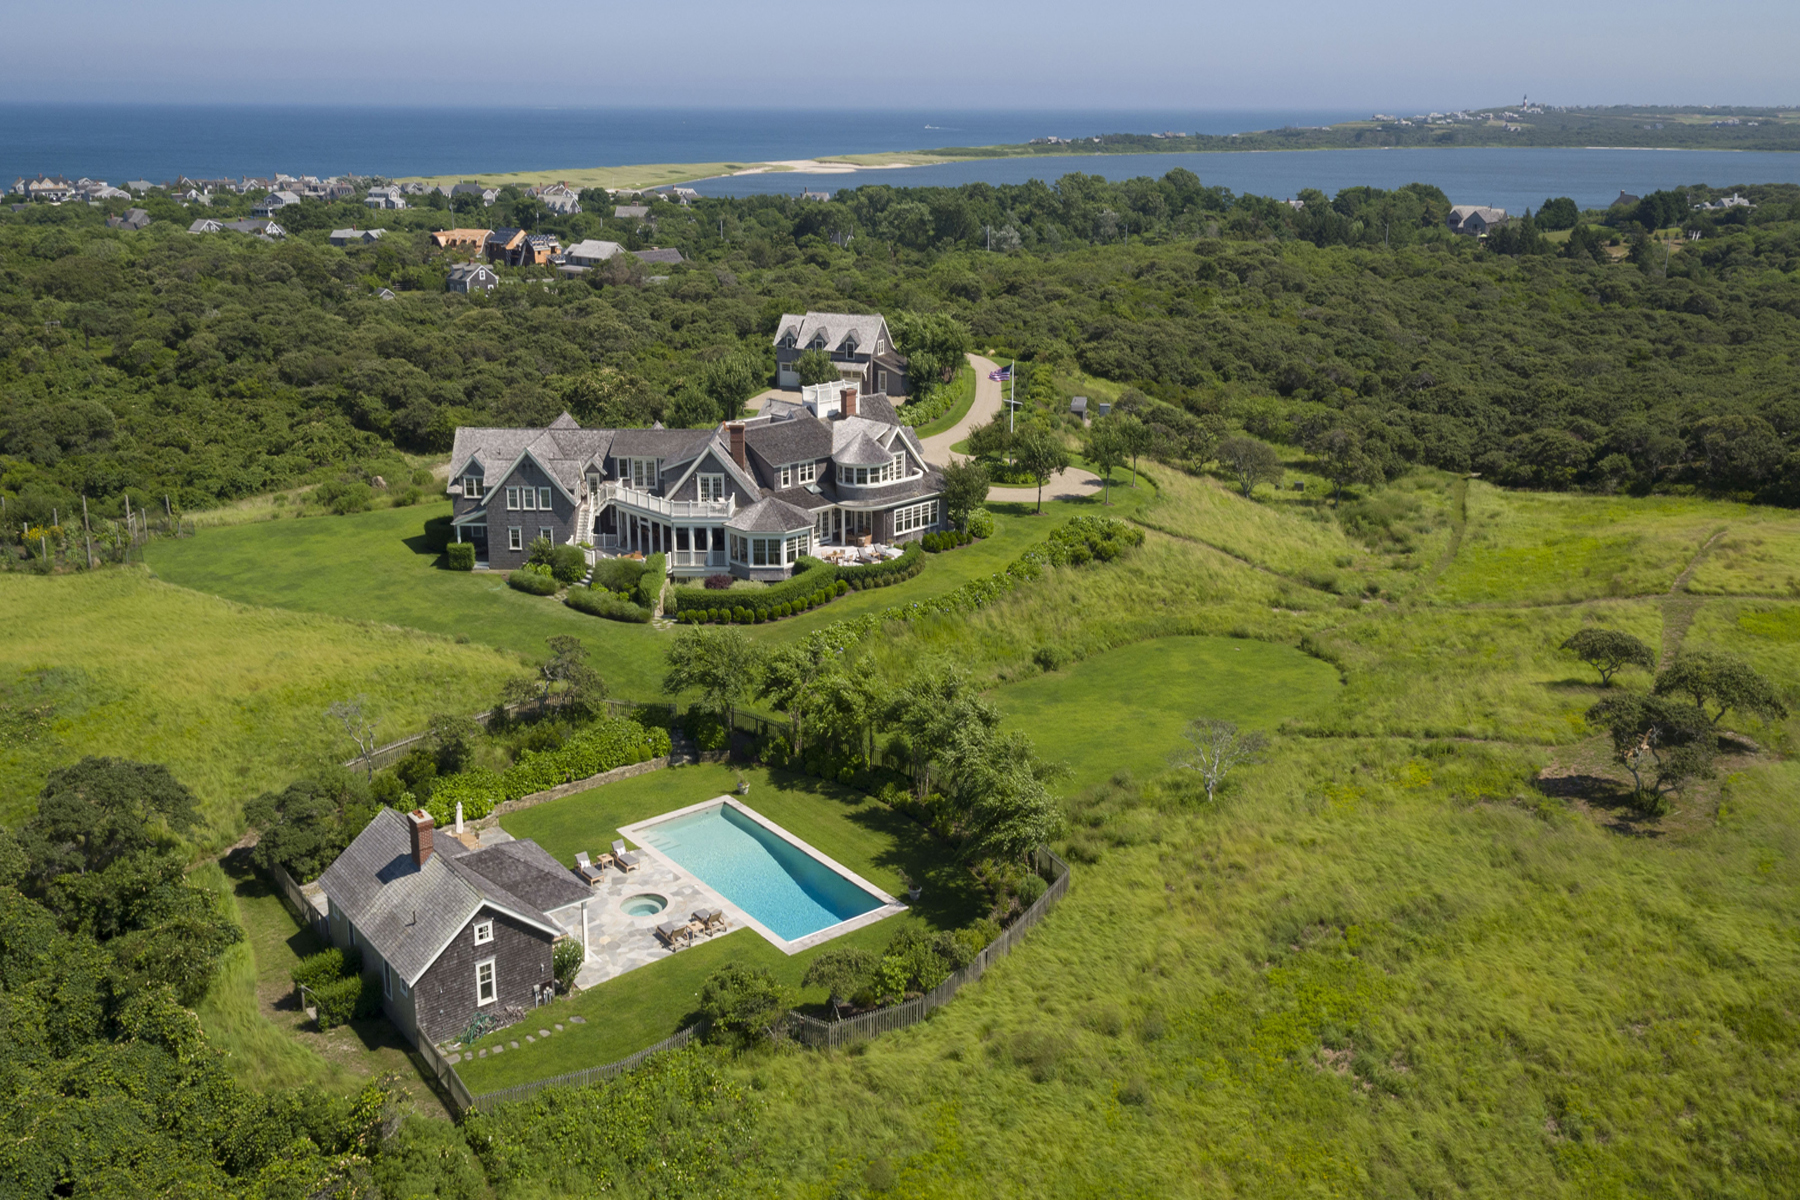 Single Family Home for Sale at Private Estate Over 14 Acres 30R Quidnet Rd Nantucket, Massachusetts, 02554 United States